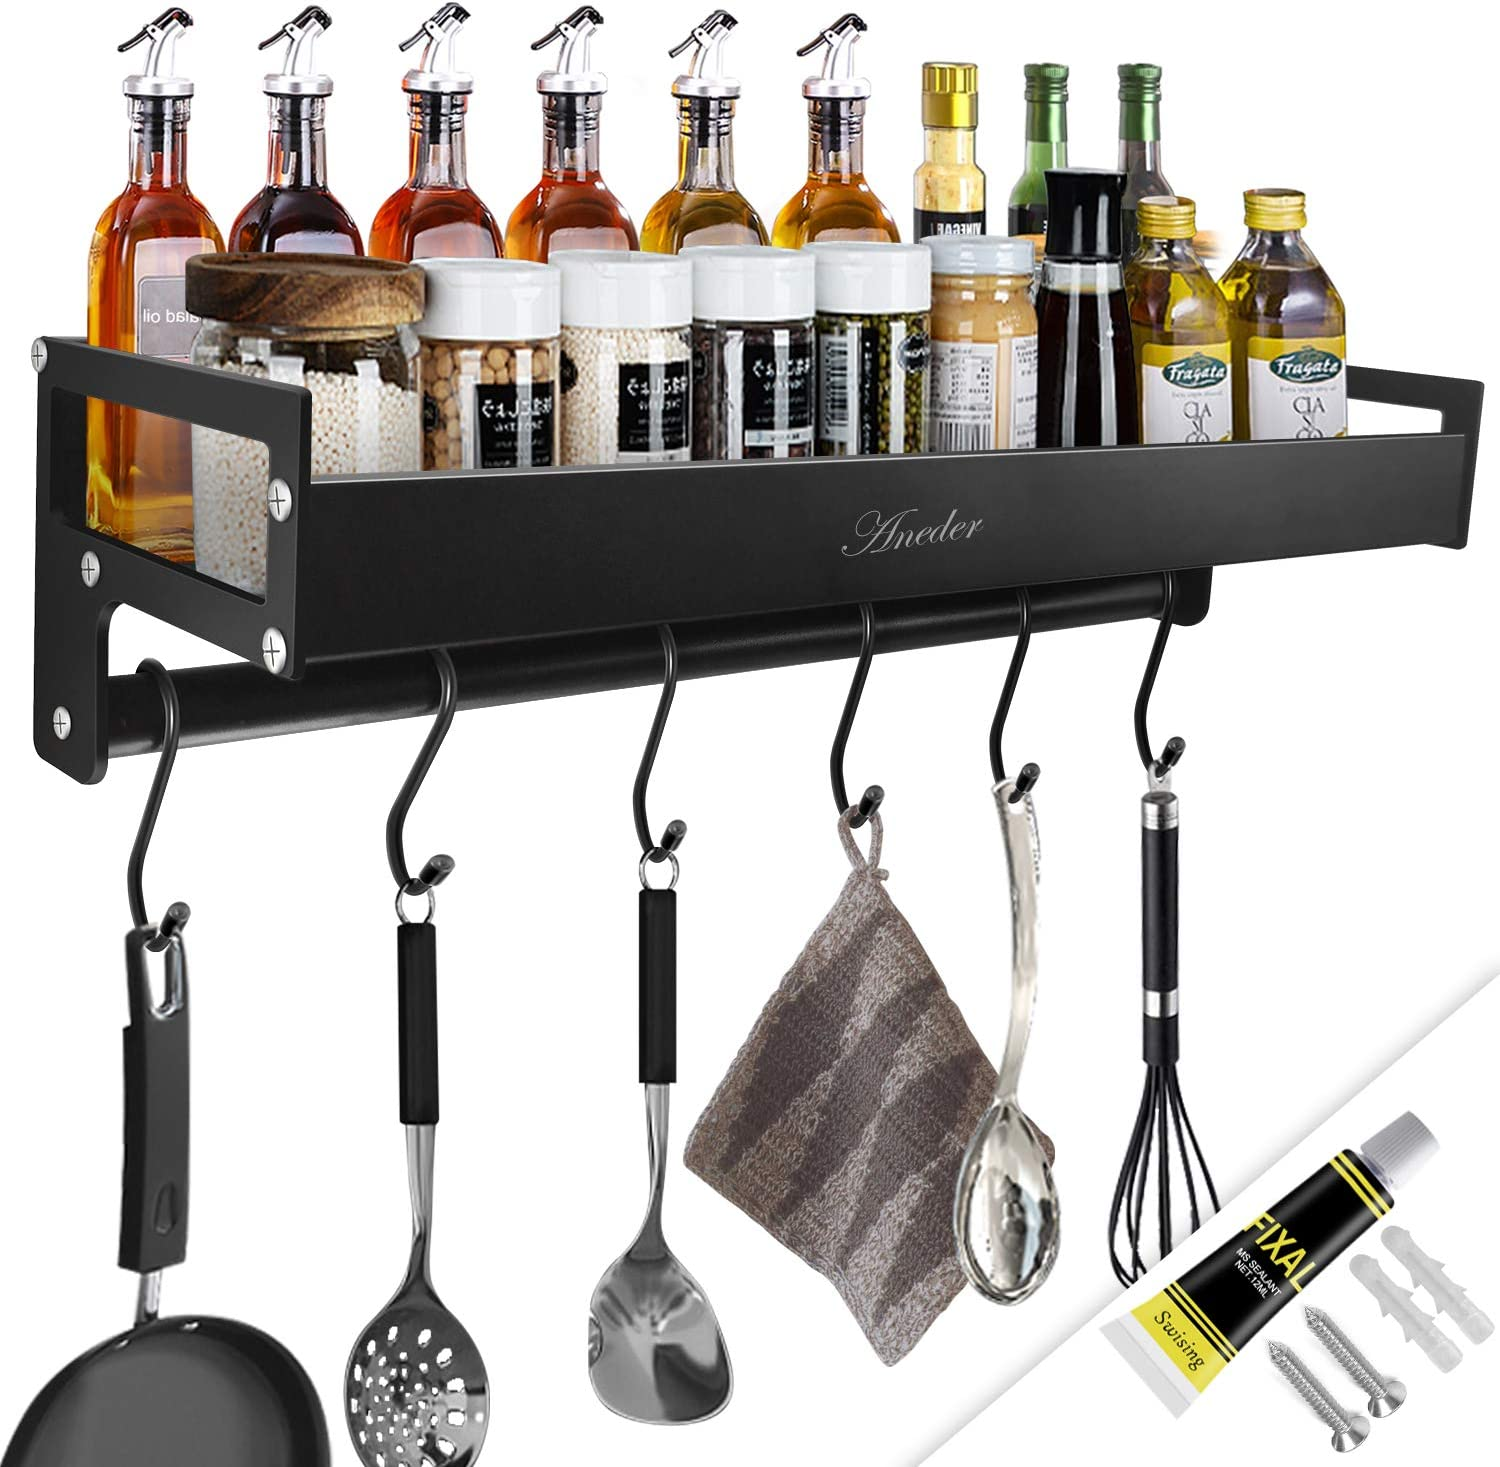 Aneder Kitchen Shelf Spice Rack Organizer With S Hooks Wall Mounted Holder Metal Floating Shelves With Towel Bar Adhesive Drill Installation For Home Bathroom Kitchen Amazon Co Uk Home Kitchen